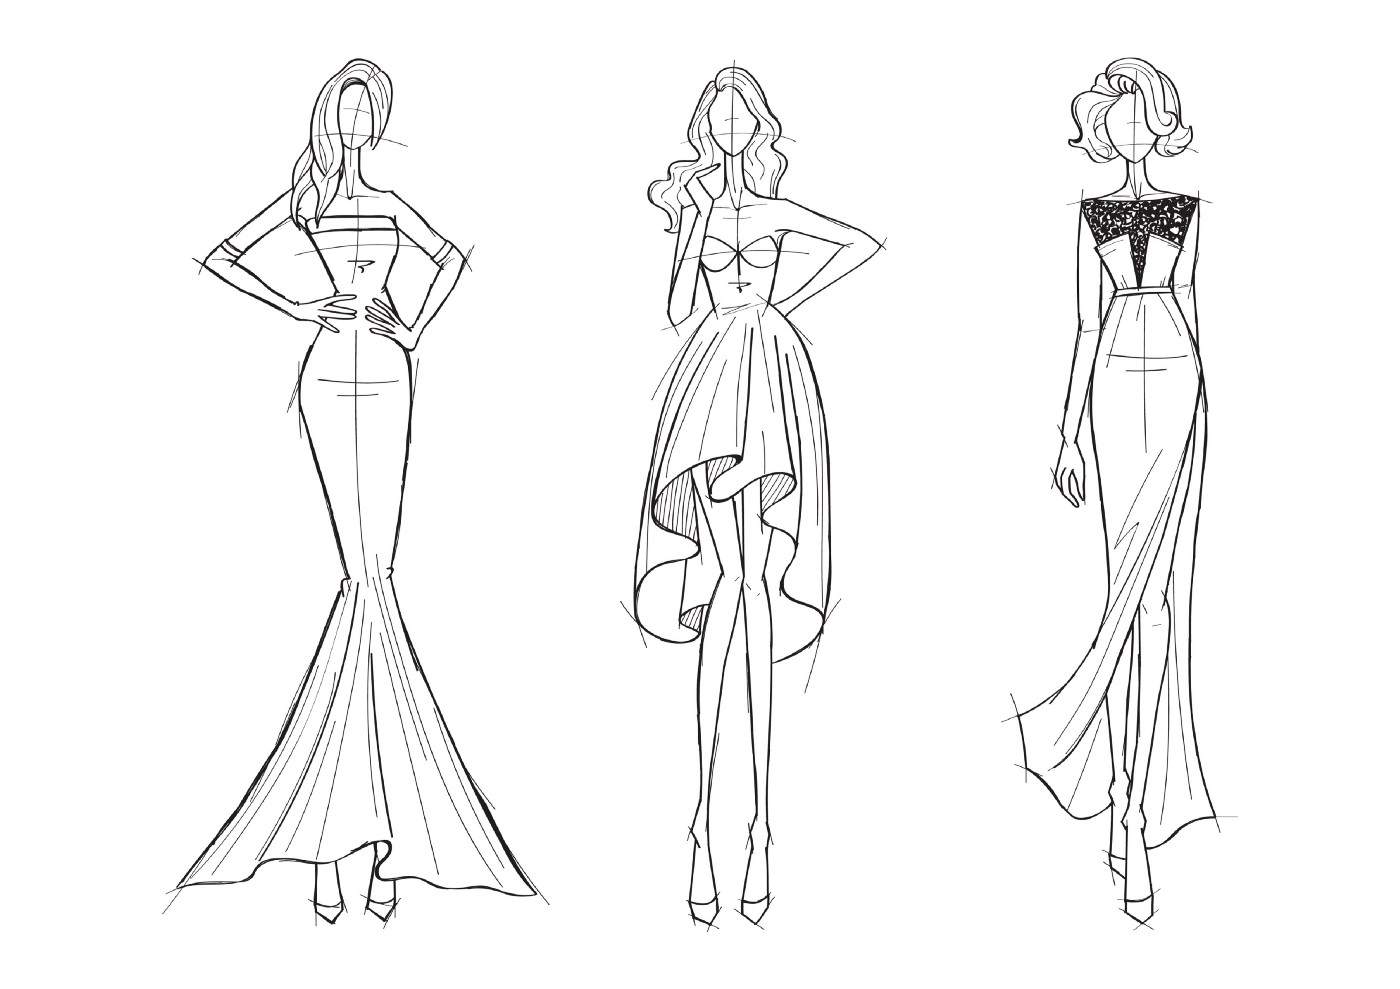 3 sketches of models wearing cocktail dresses.